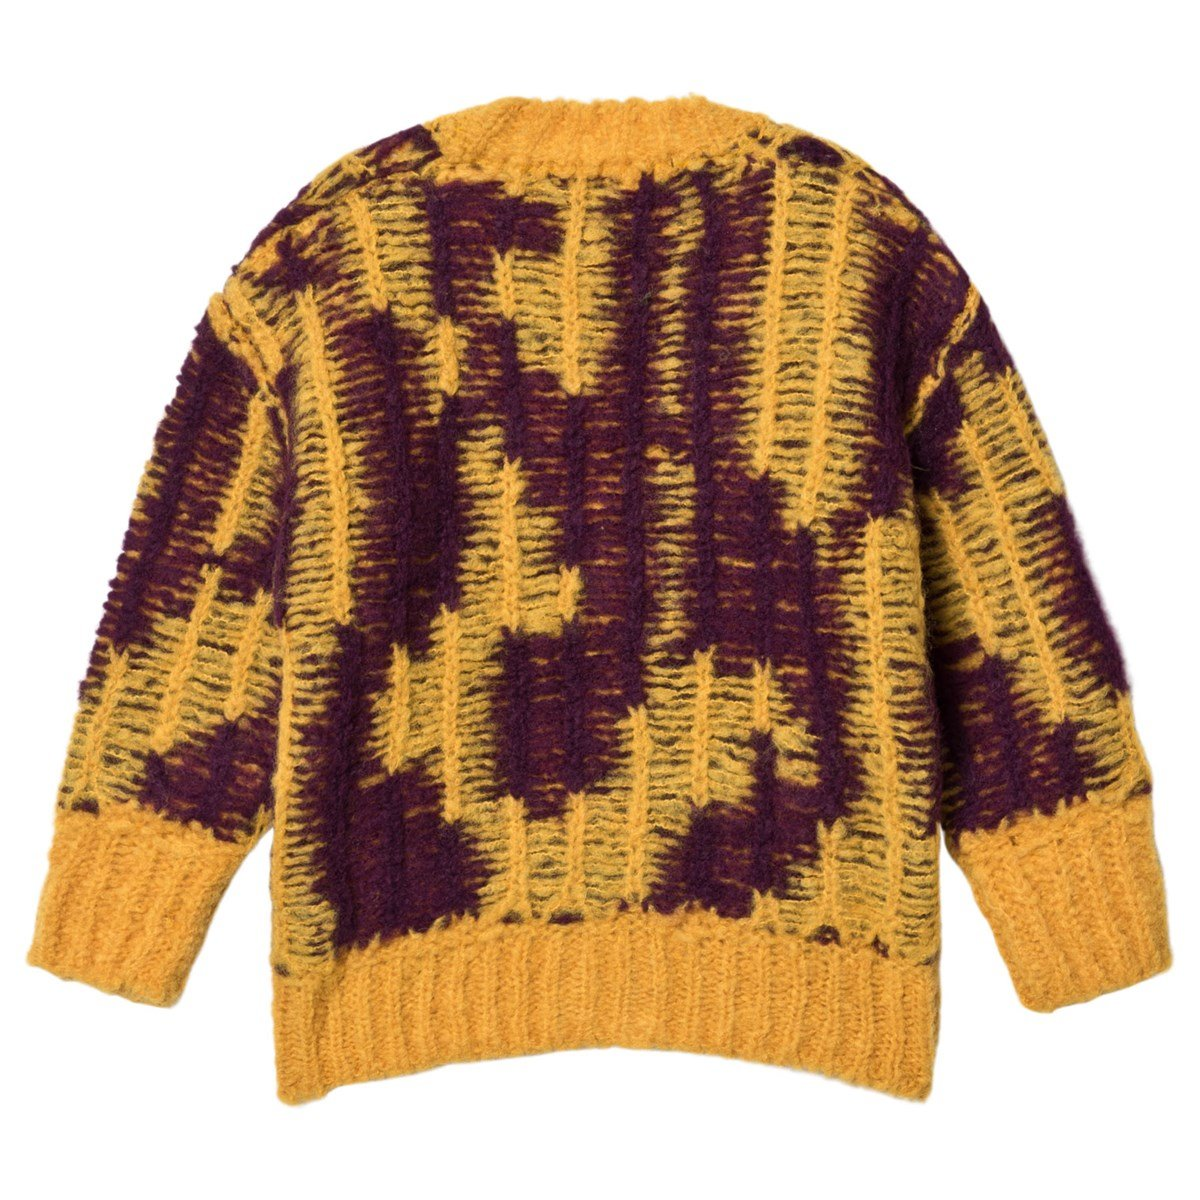 The Animals Observatory Arty Racoon Kids Cardigan Yellow